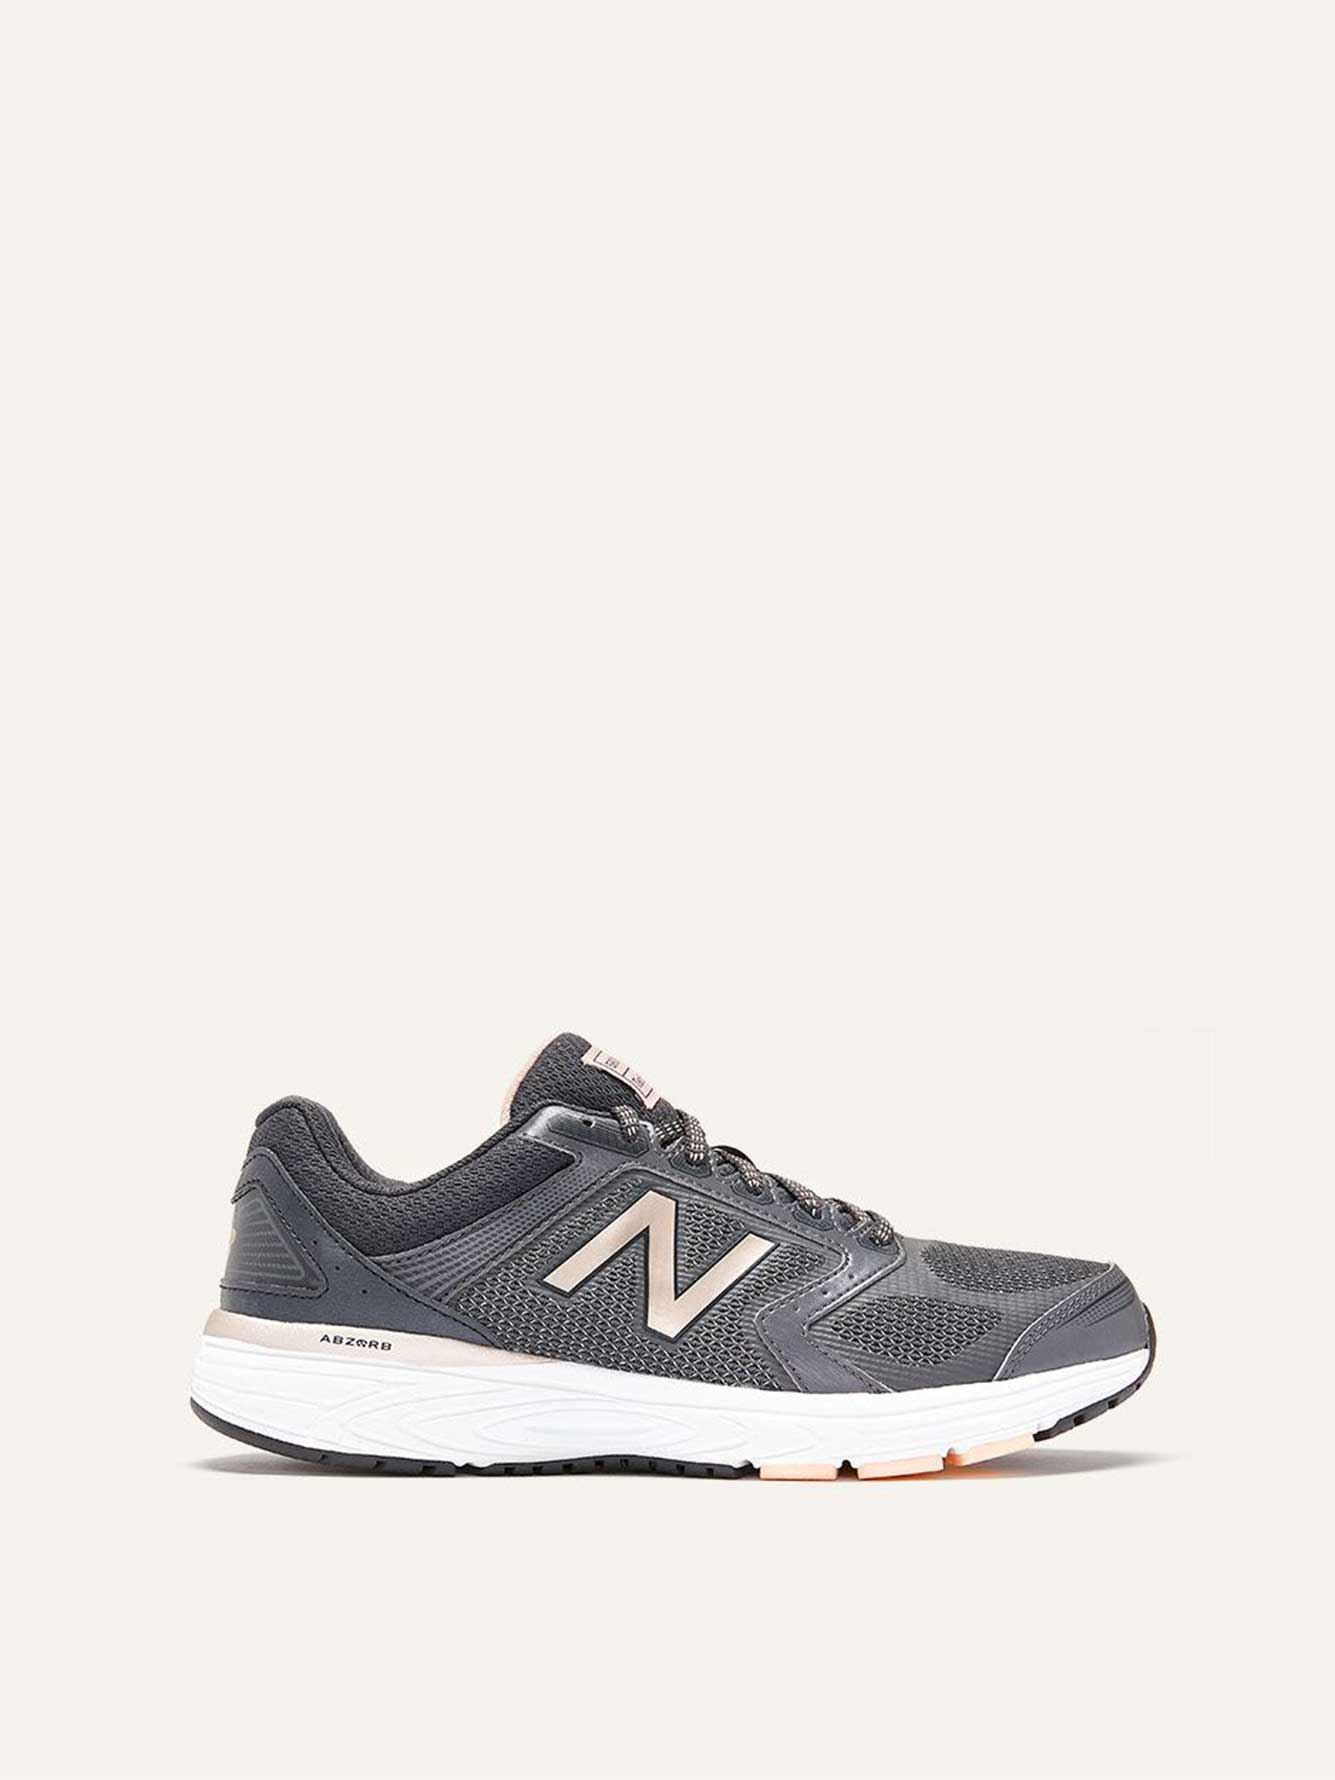 836efbe3c255e9 Wide Width Sneakers with Metallic Details - New Balance | Penningtons